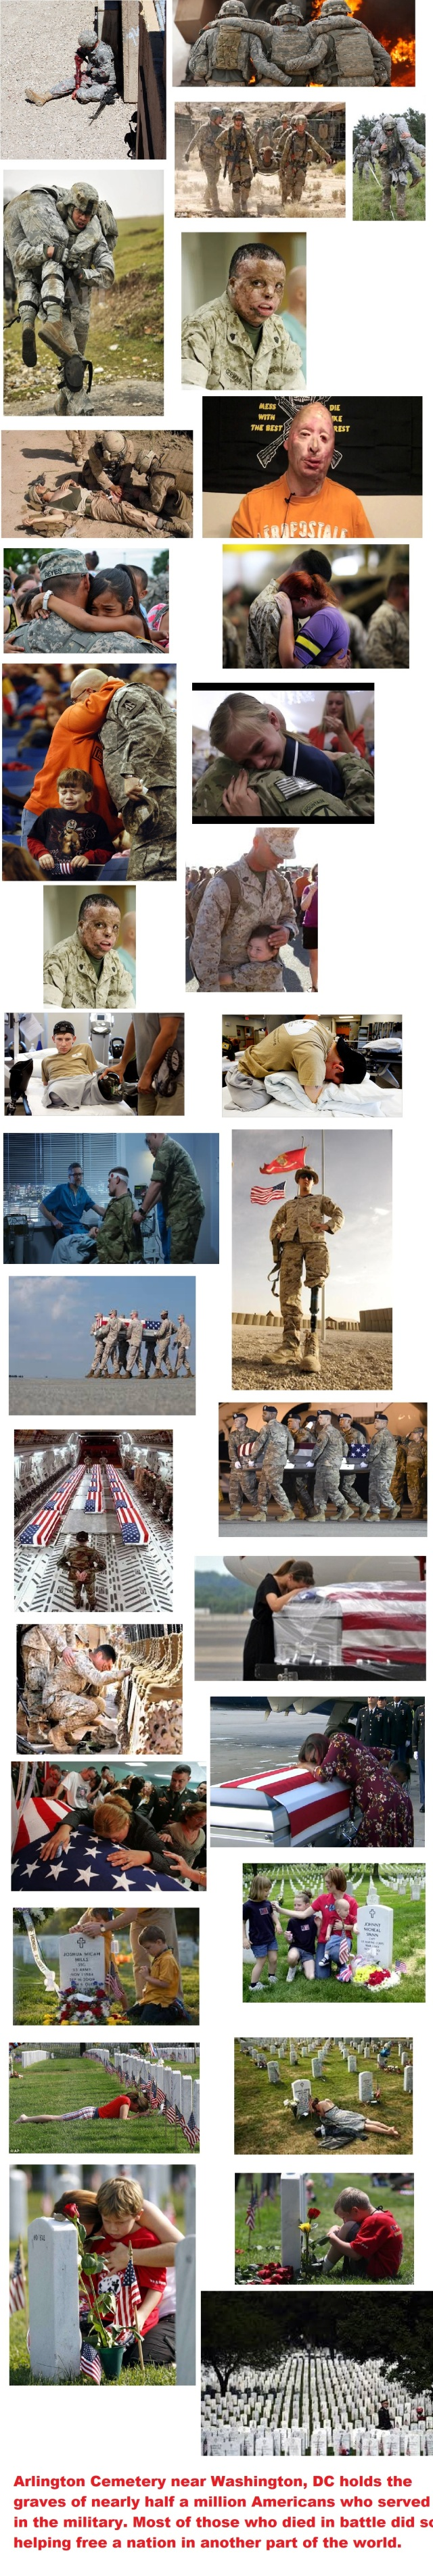 US COST COLLAGE to help other nations.jpg